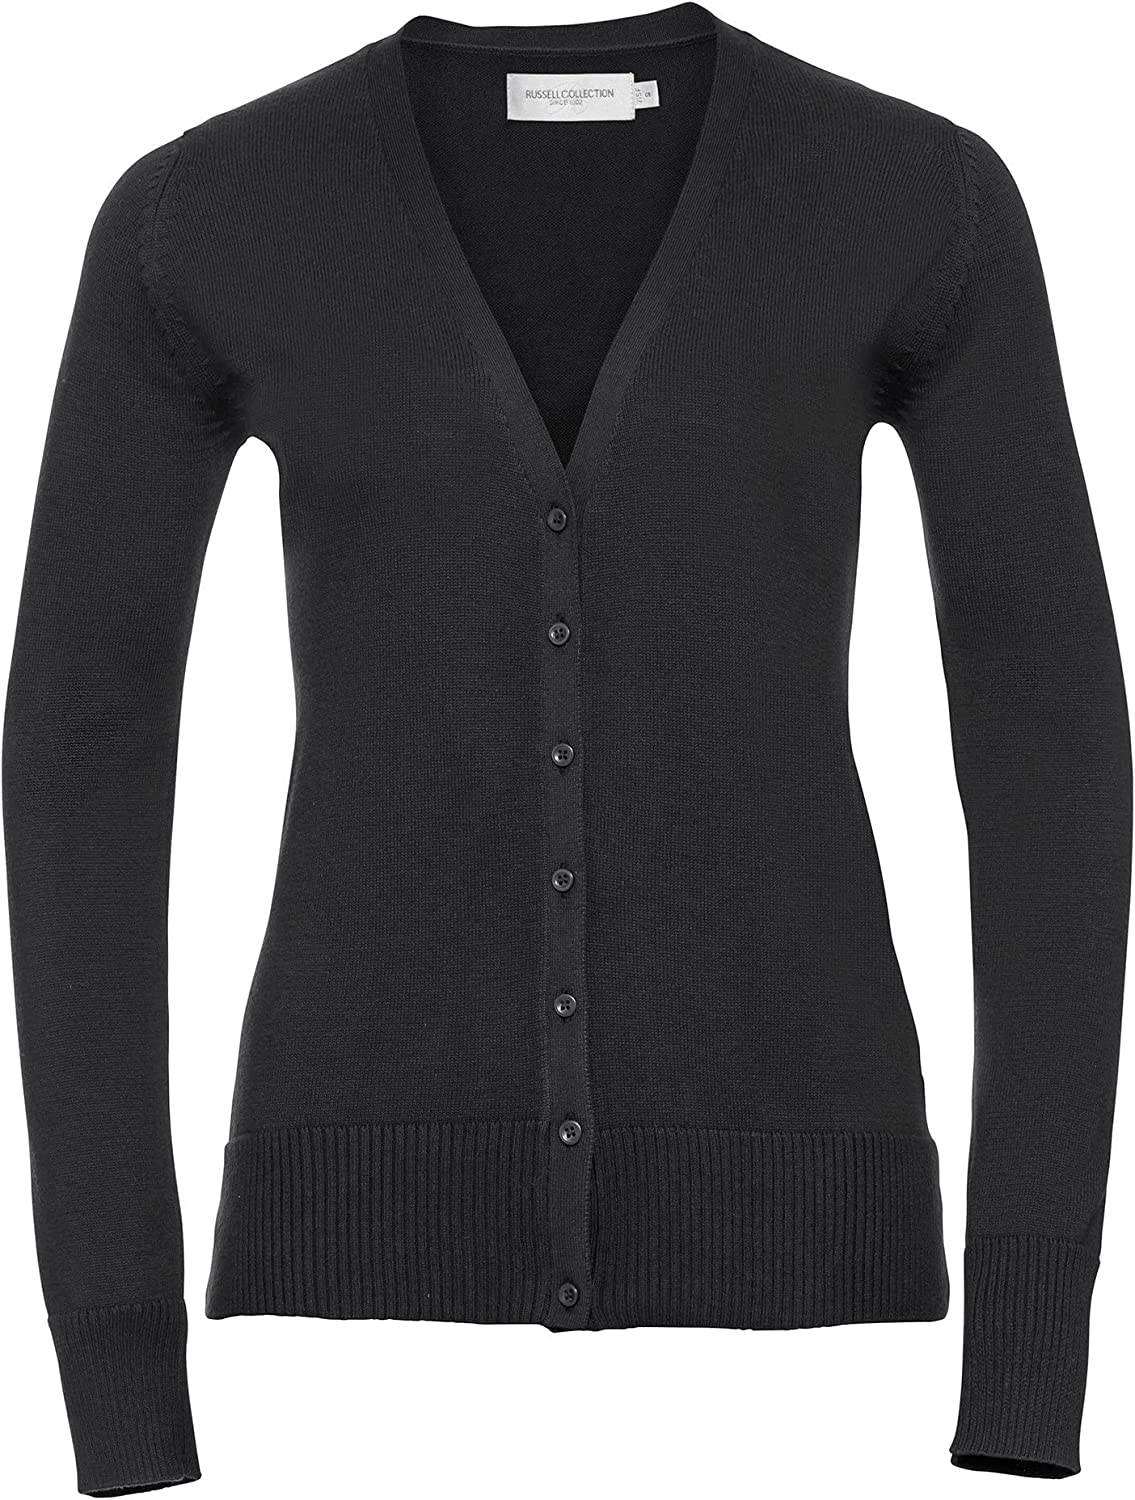 Russell Collection New sales Ladies Womens 3XL Knitted Cardigan Mail order V-neck